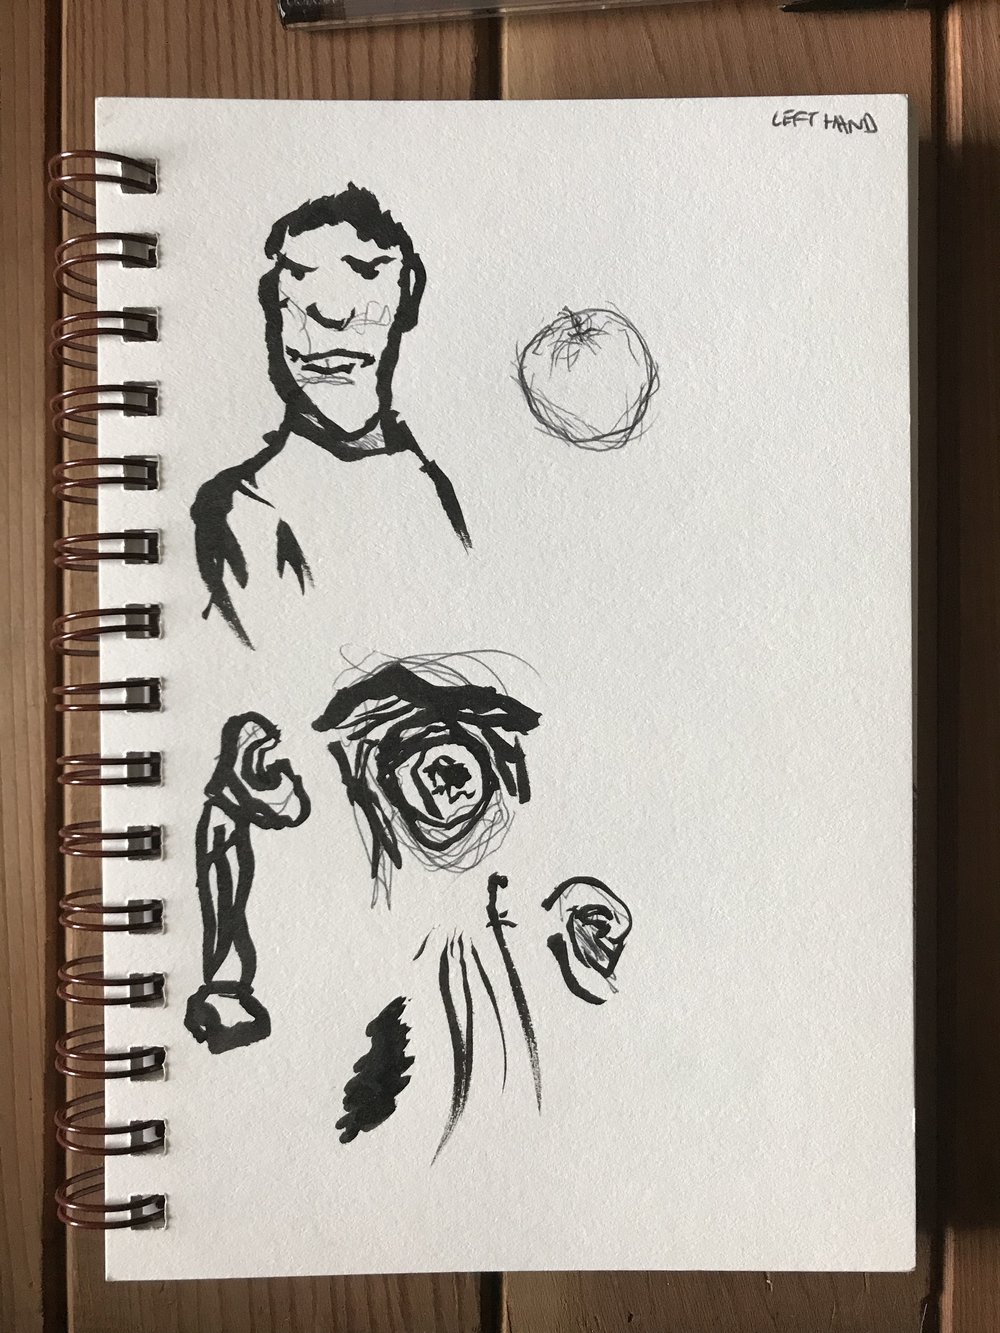 Tried a brush pen, wasn't really happy with the results so this was the only day I didn't just use a pen.